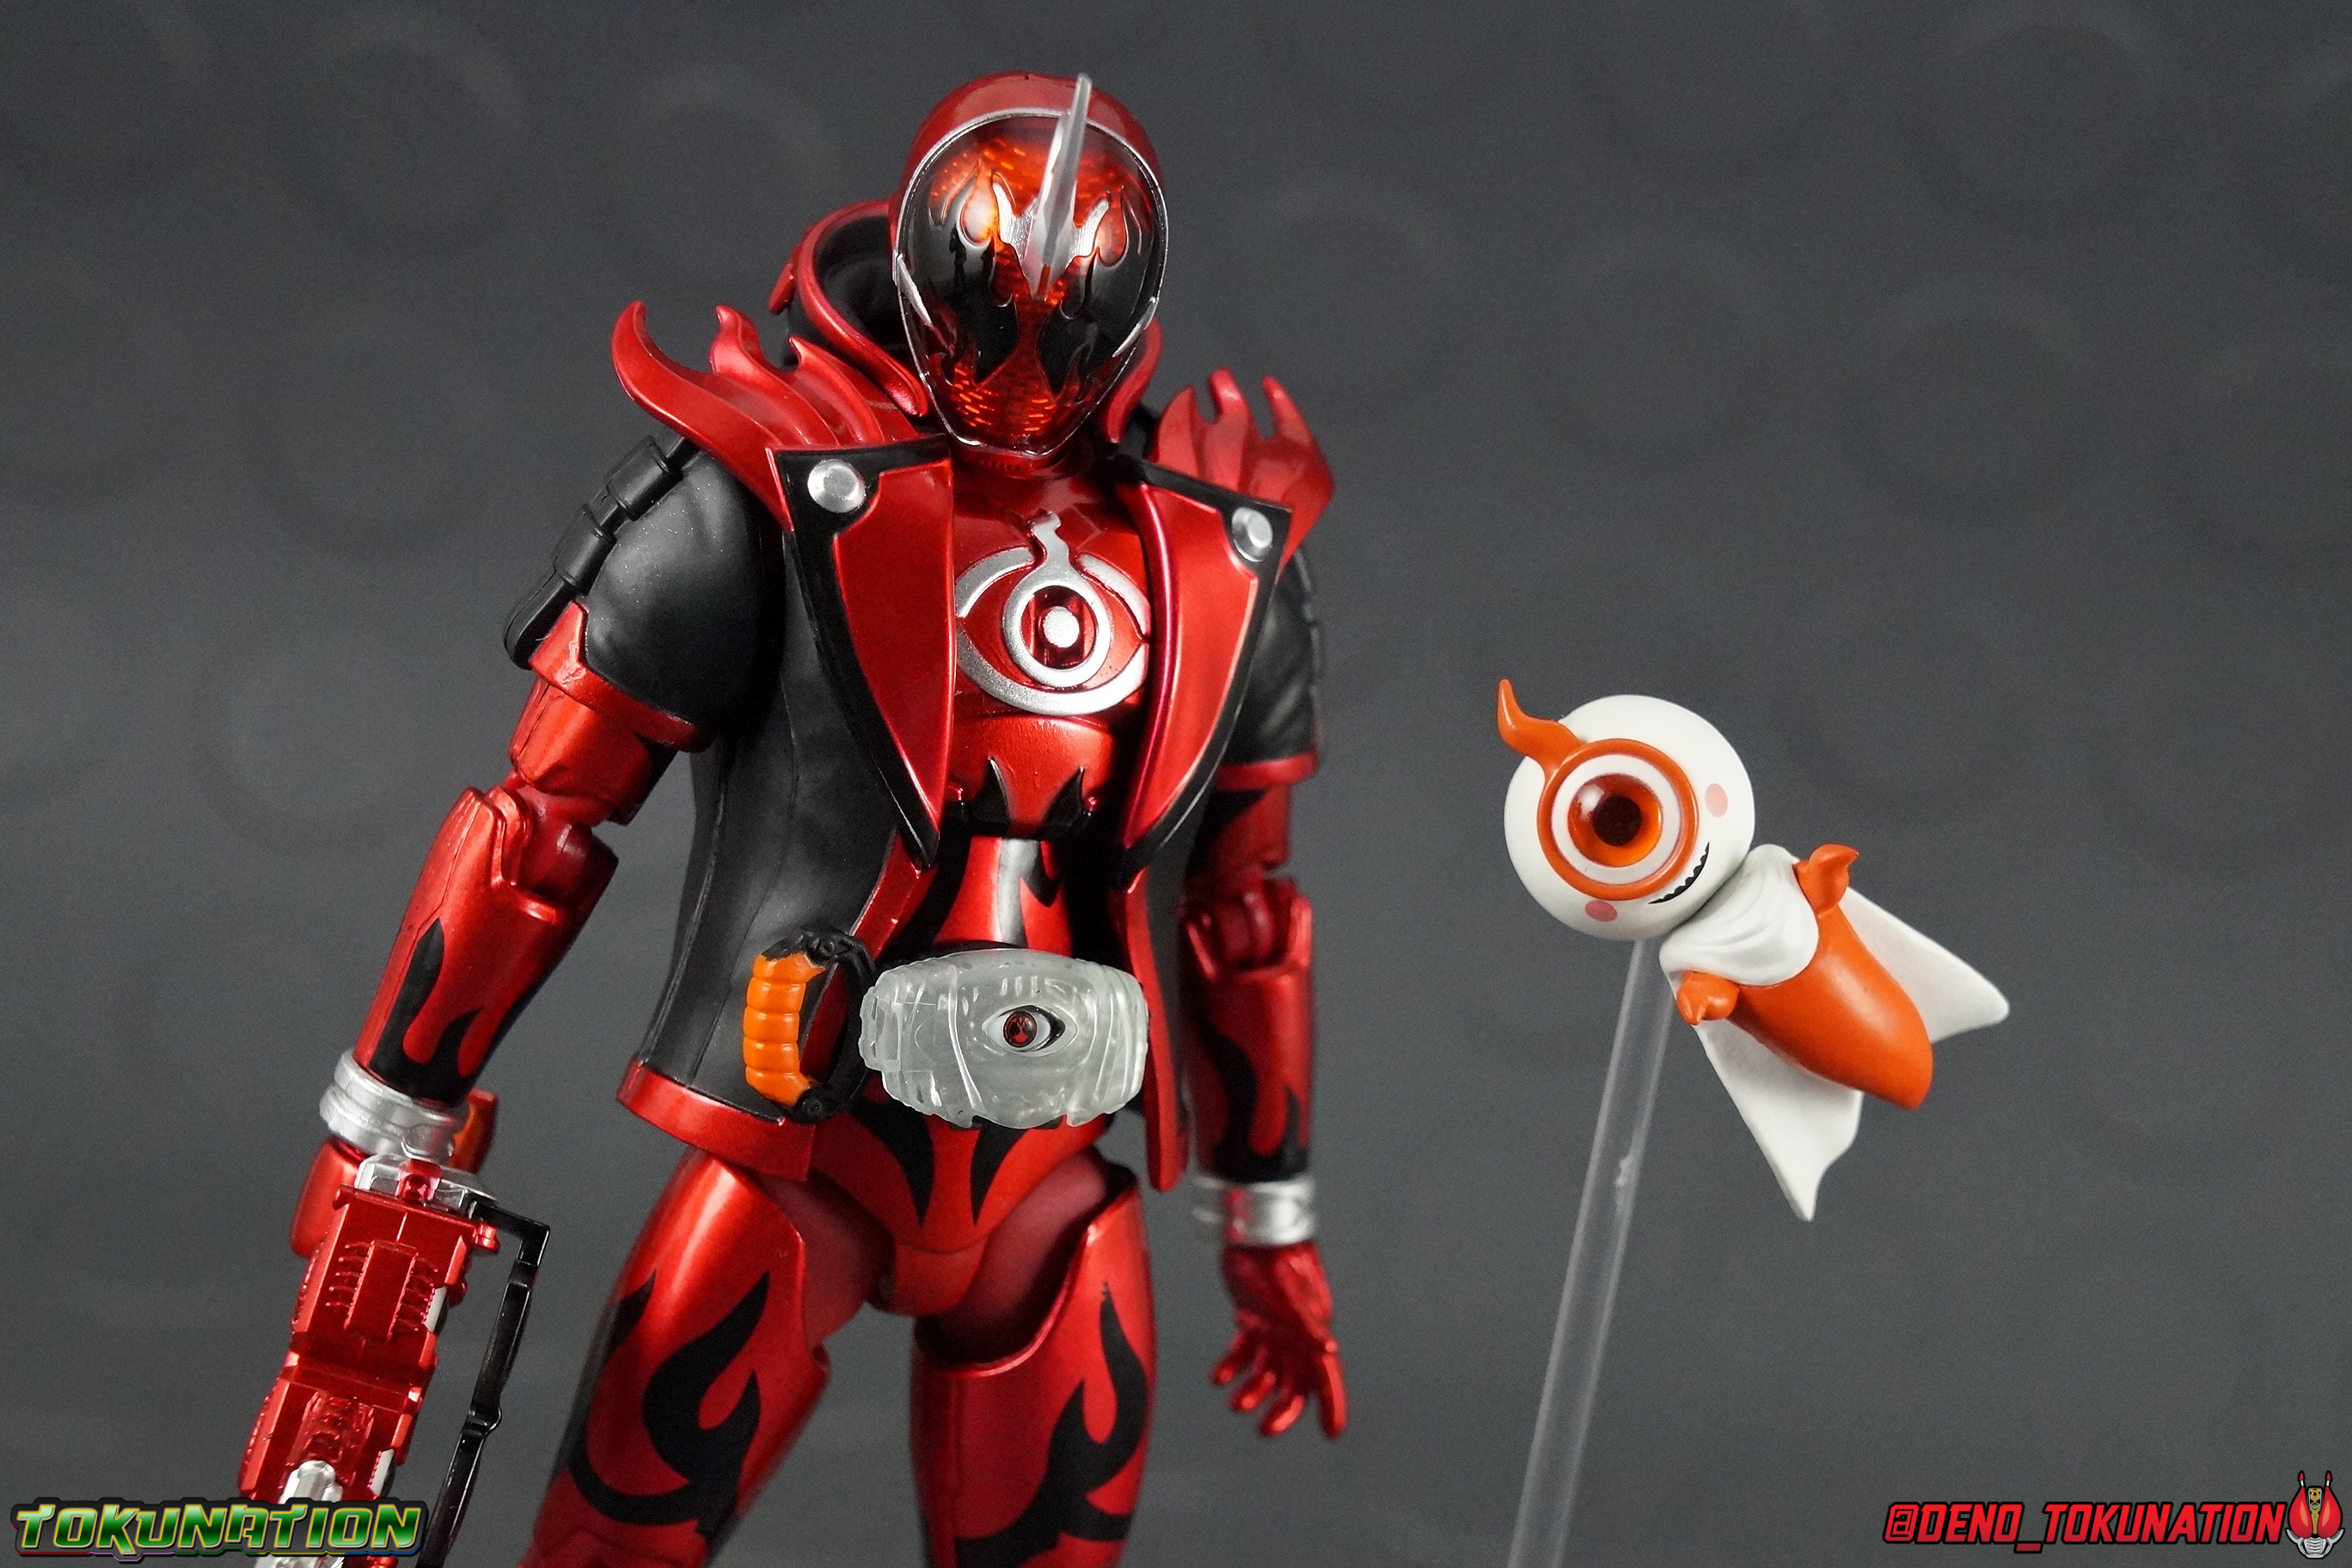 SH Figuarts Kamen Rider Ghost Toucon Boost Damashii 001